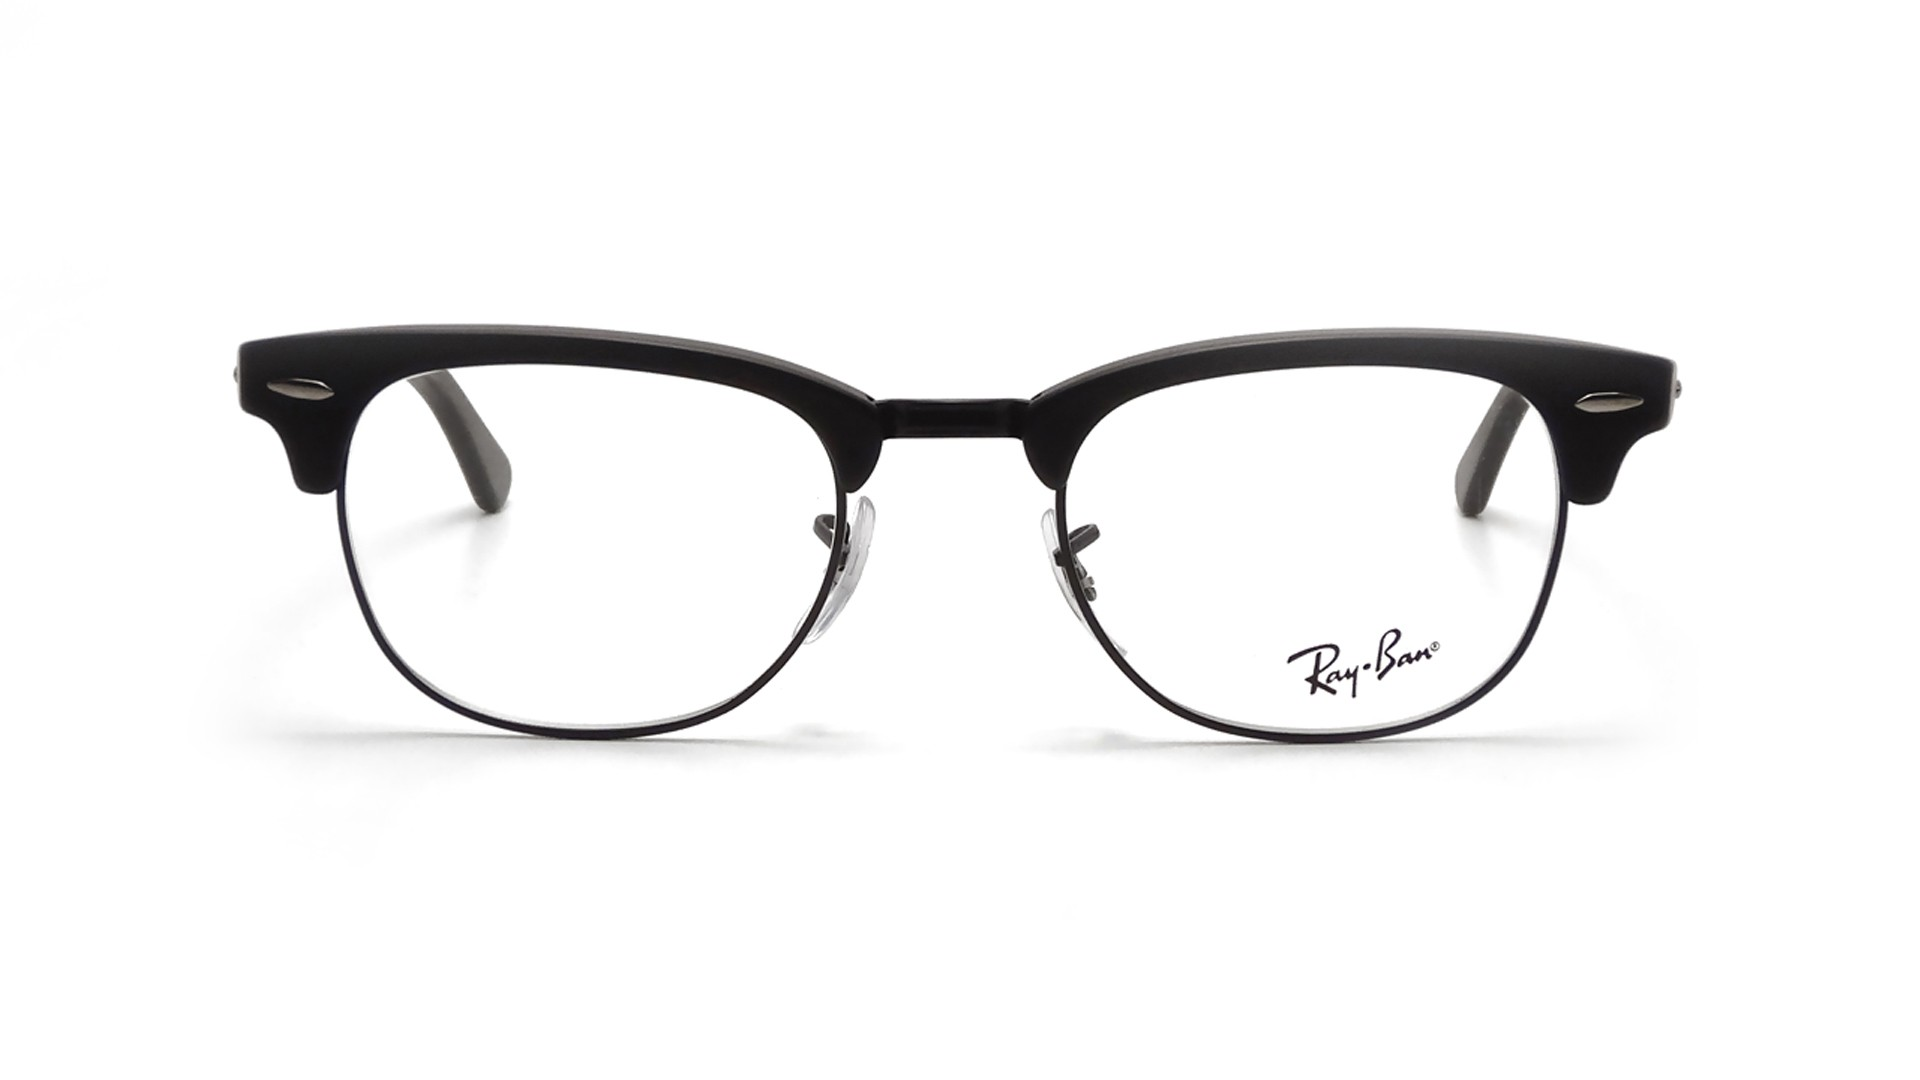 aed2ae27ea0ccb ray ban clubmaster vision direct